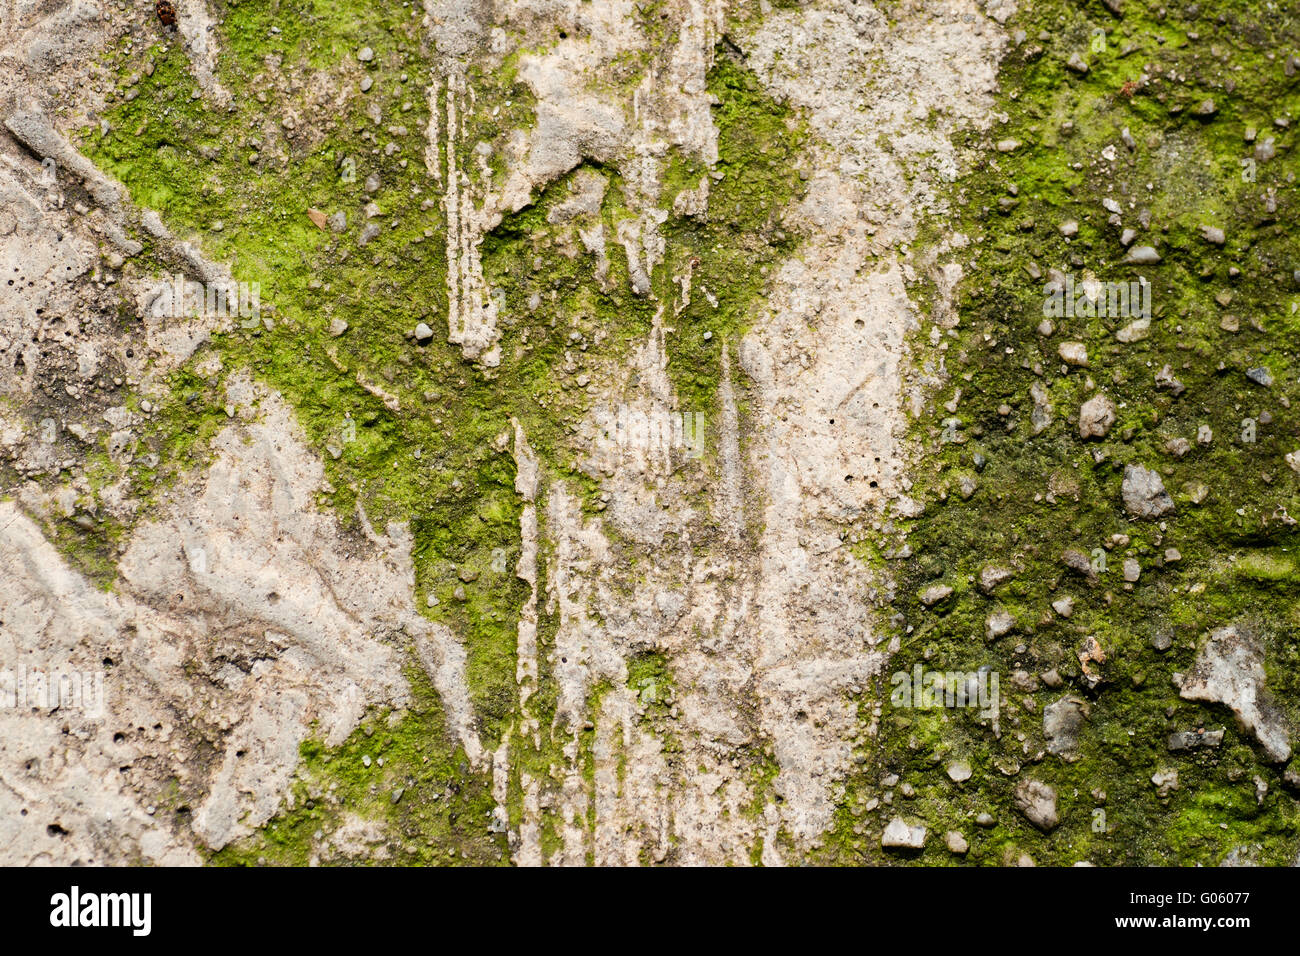 Grunge textured concrete sidewalk with green mould - Stock Image